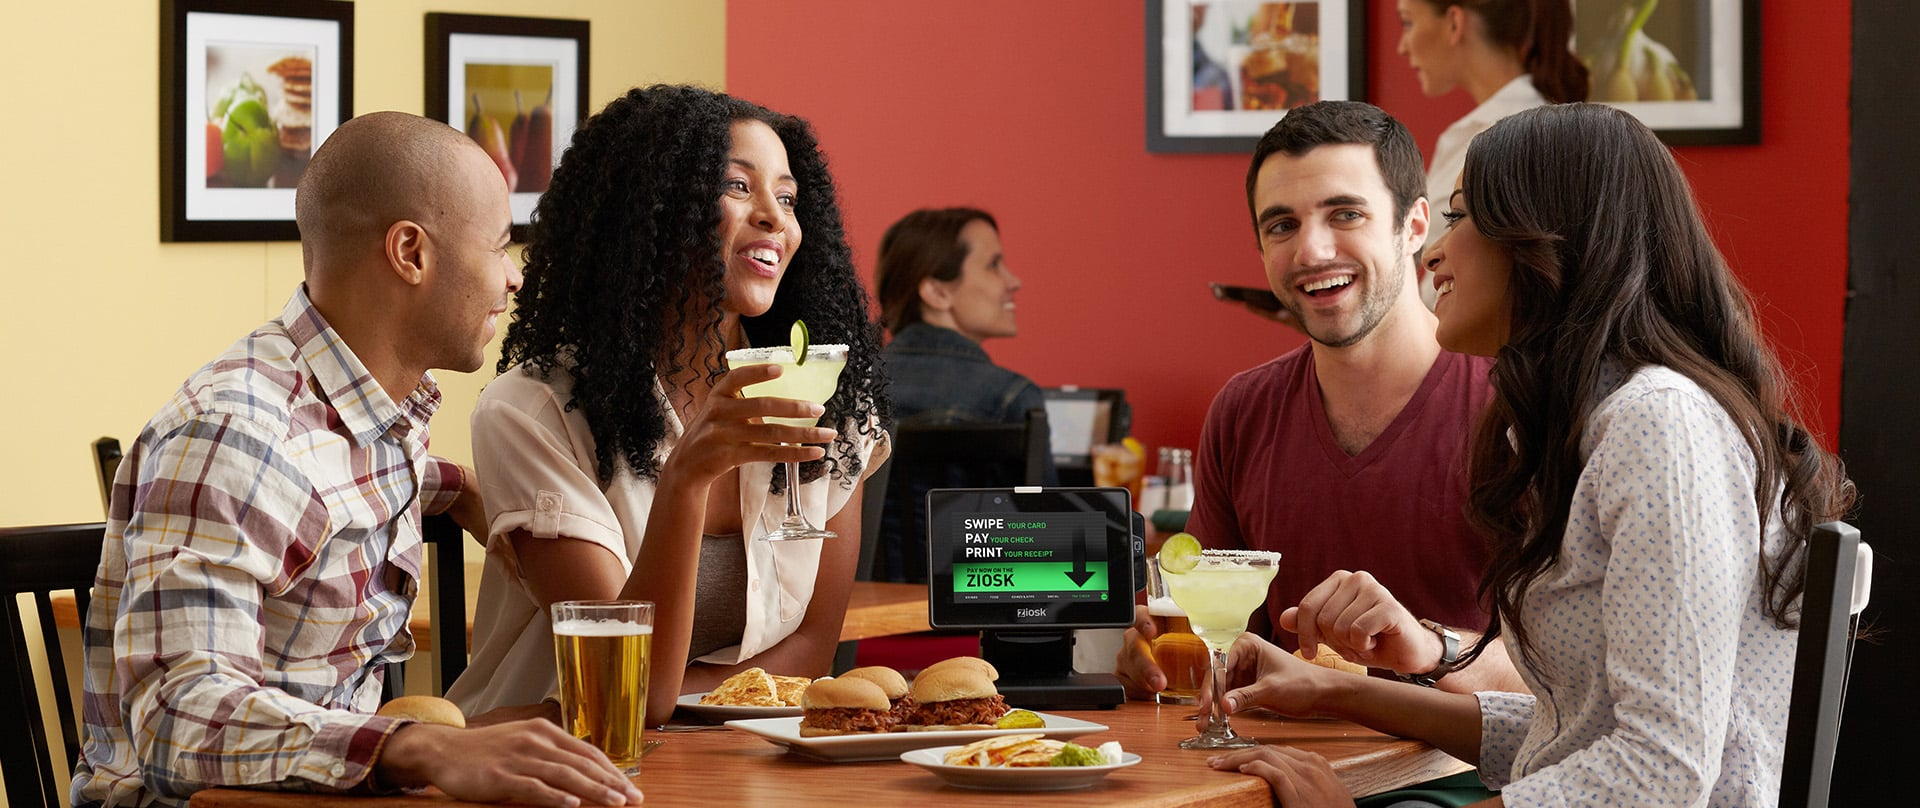 Chili's Earns An Additional $13.5M By Improving Server Selection